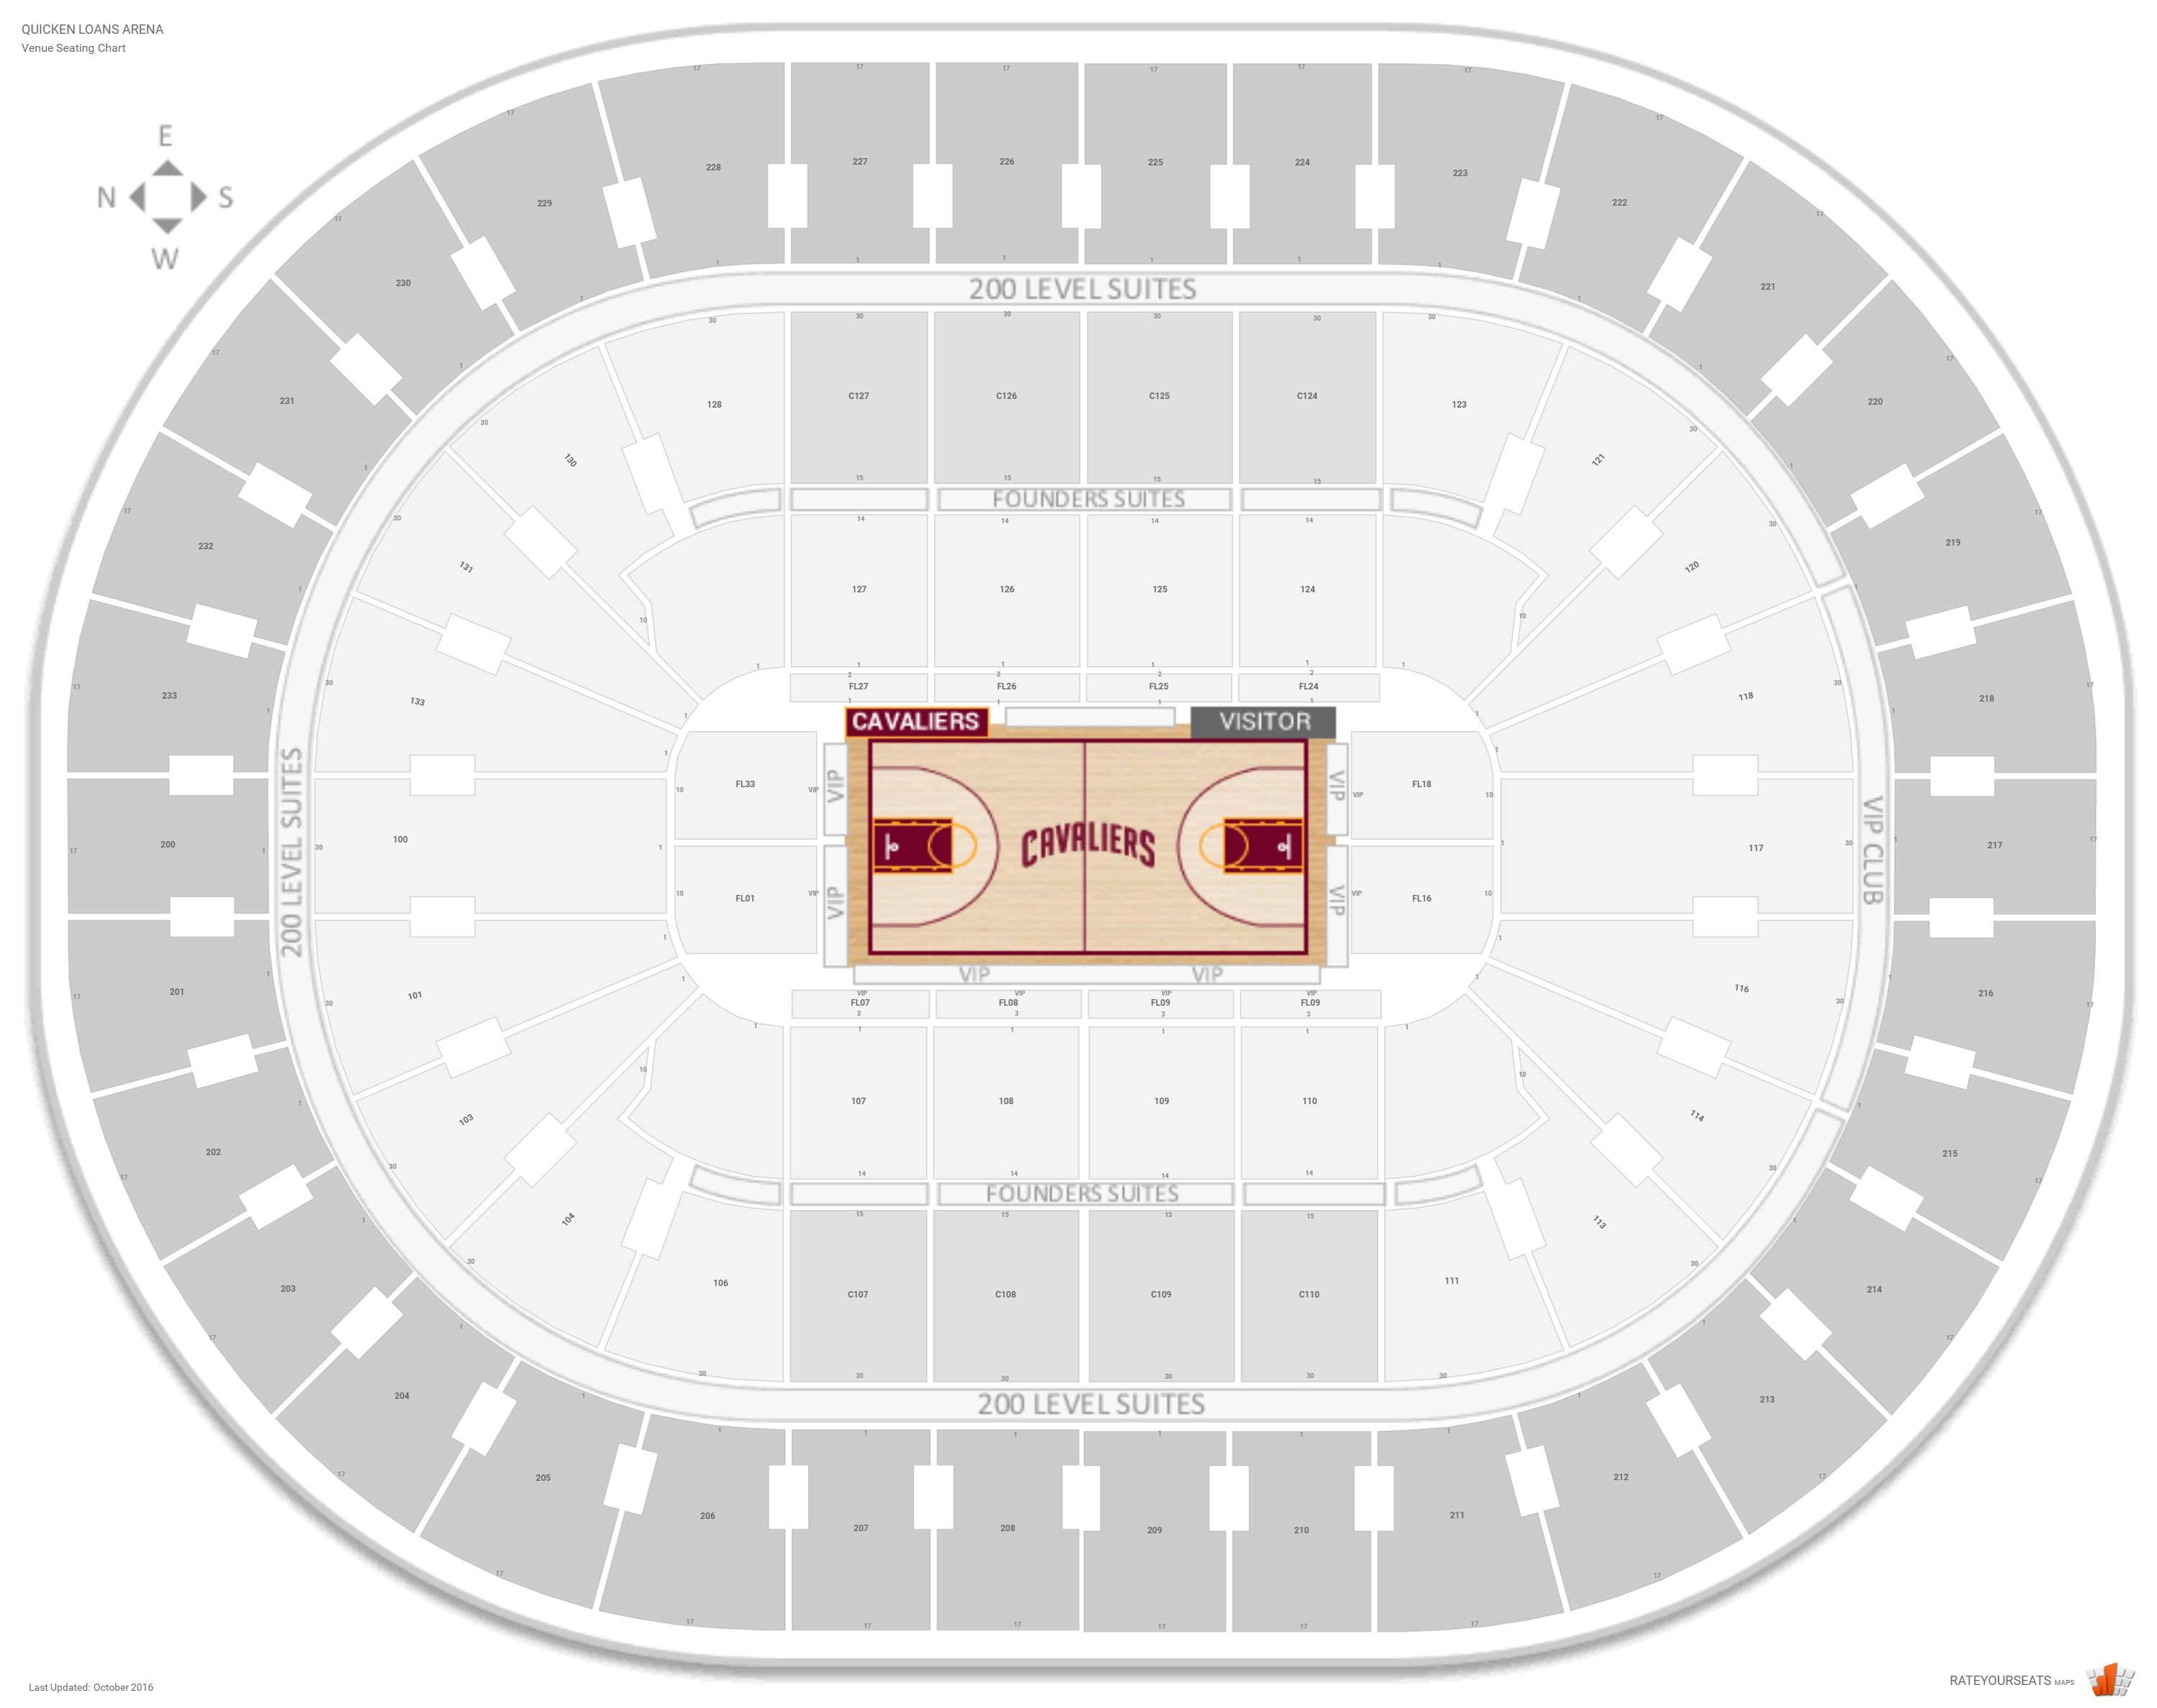 Seating charts quicken loans arena official website - The States That Delivered Huge Huge Numbers For Trump Got Tremendous Convention Seats Bon Jovi Ticket Listings Quicken Loans Arena Venue Map And Seating